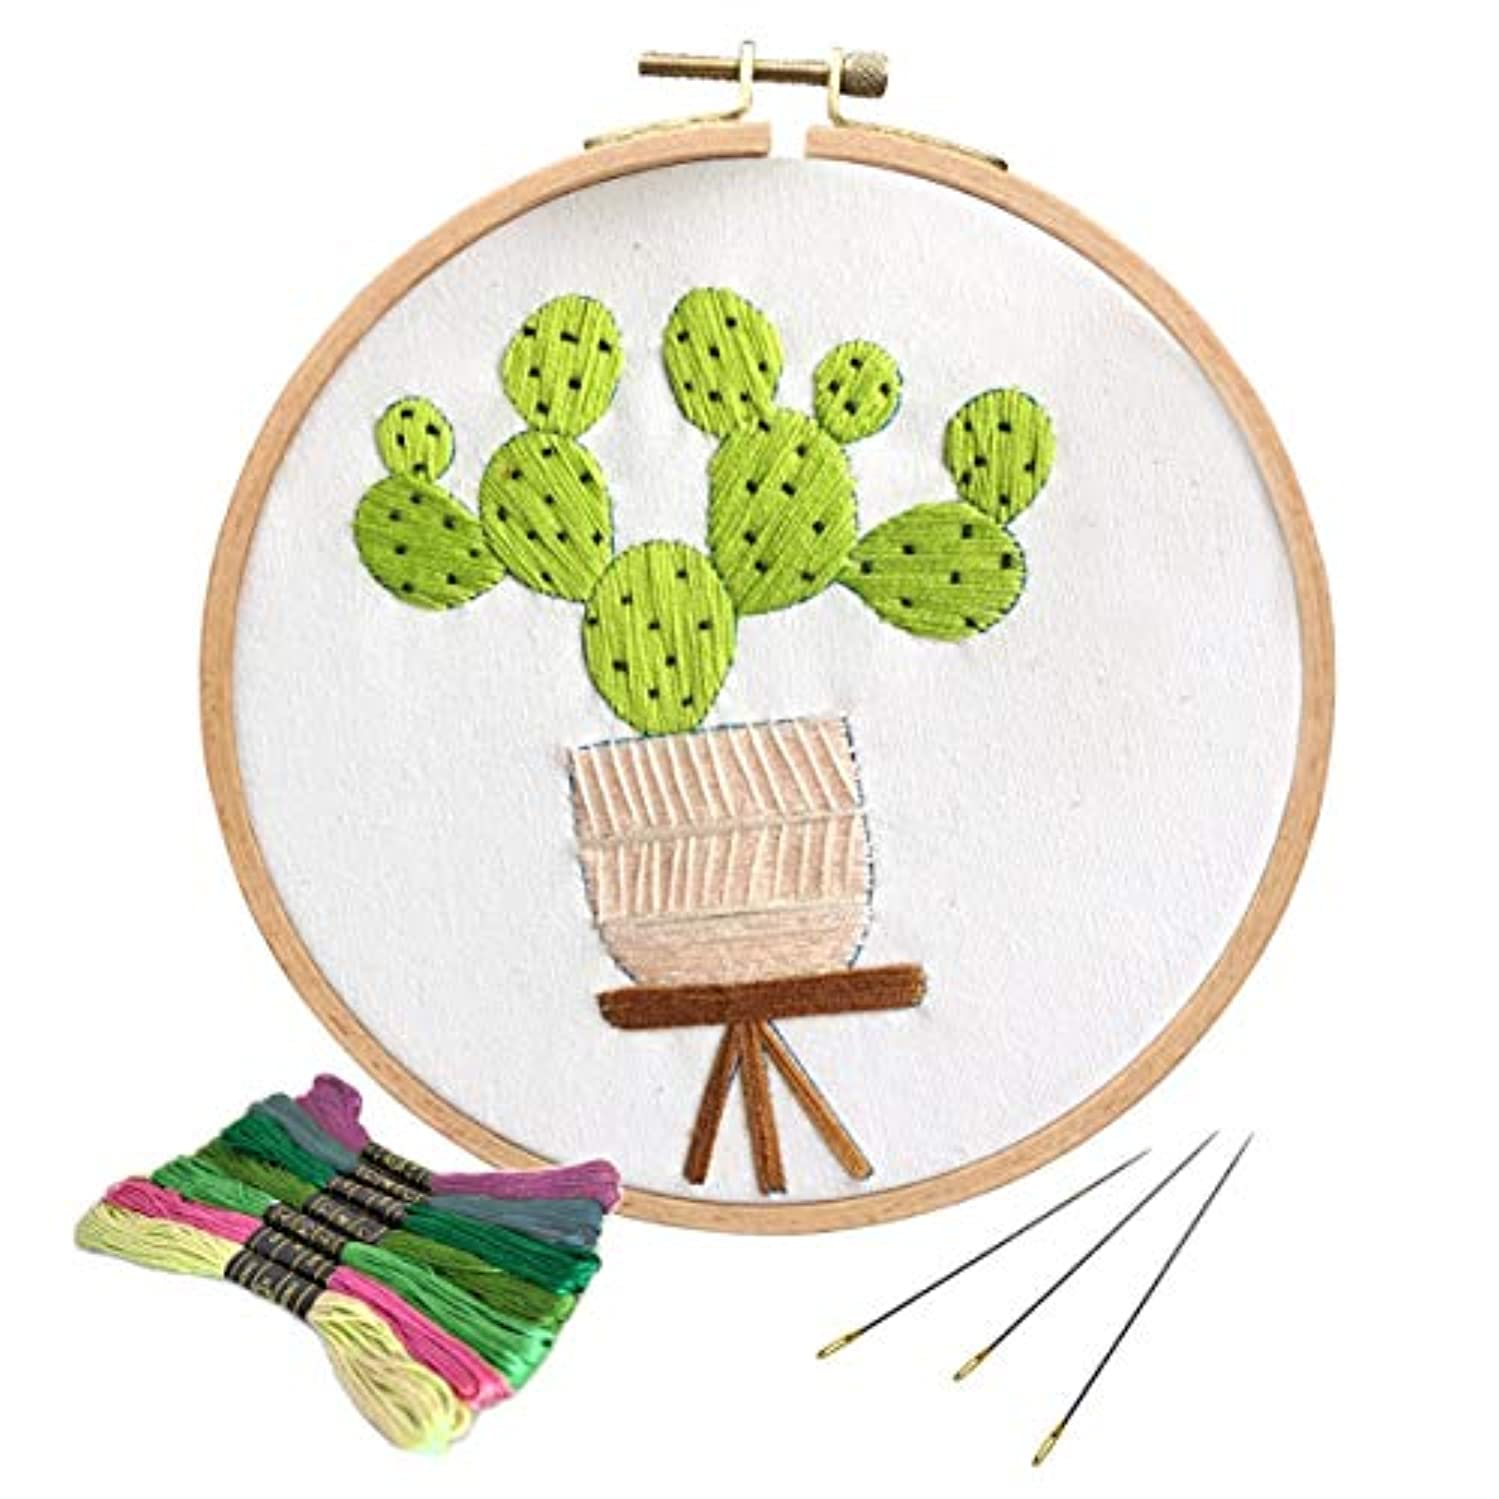 Unime Full Range of Embroidery Starter Kit with Partten, Cross Stitch Kit Including Embroidery Cloth with Color Pattern, Bamboo Embroidery Hoop, Color Threads, and Tools Kit (Light Cactus) yckpsuhdceqrso